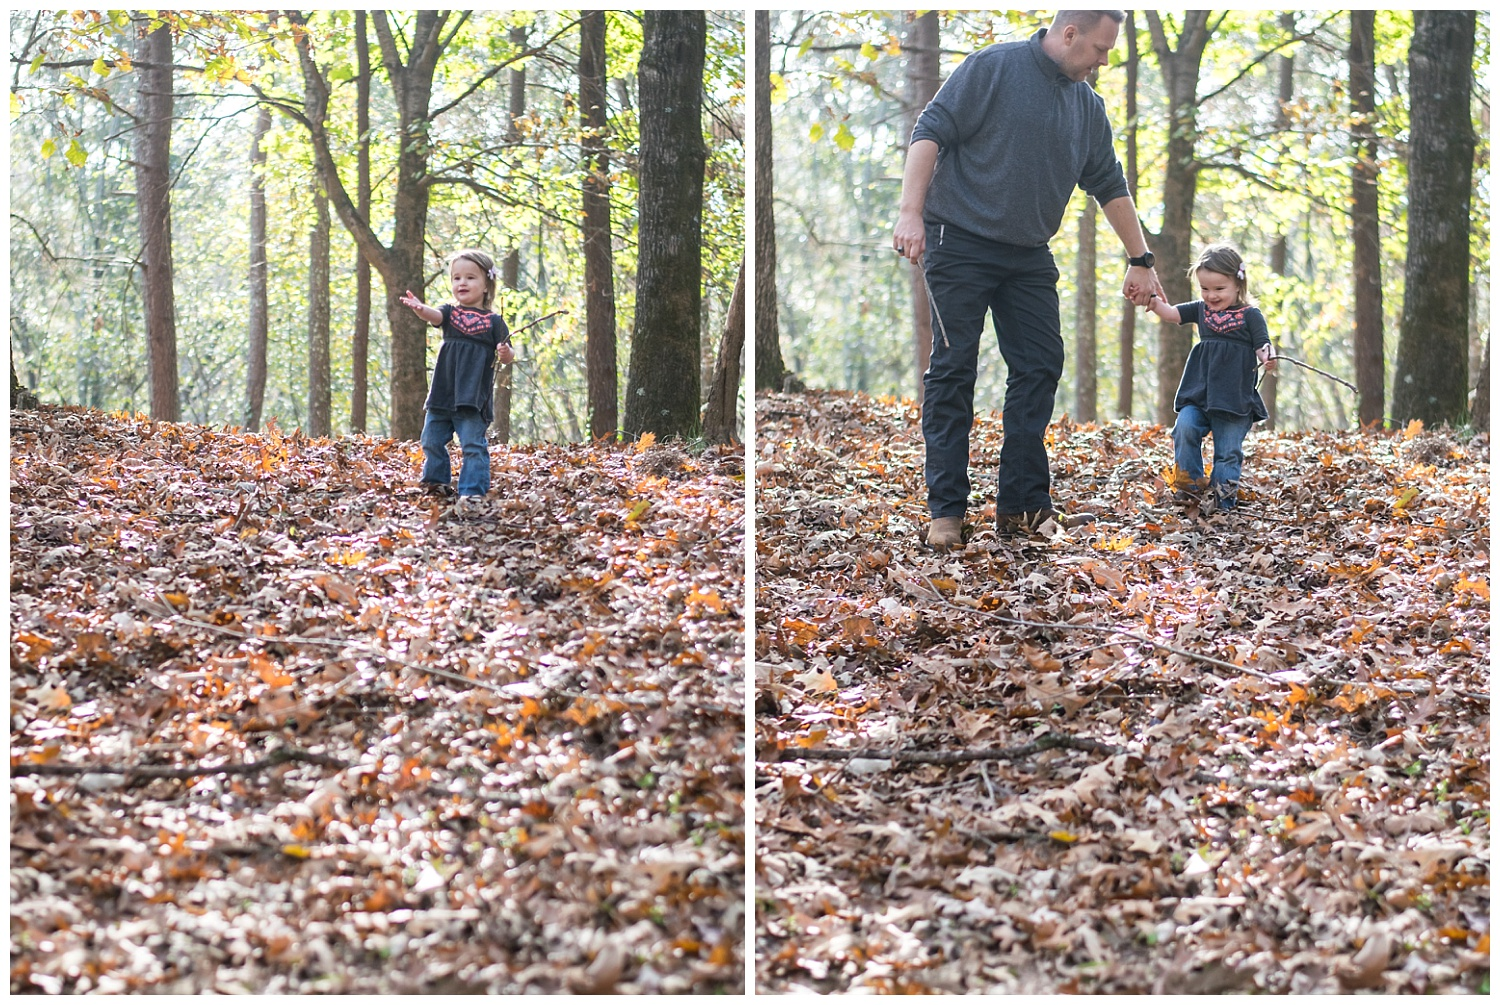 these are side by side images of a young girl reaching out her hand to ask for help walking down a hill of leaves. the images were taken during a lifestyle family session in decatur georgia